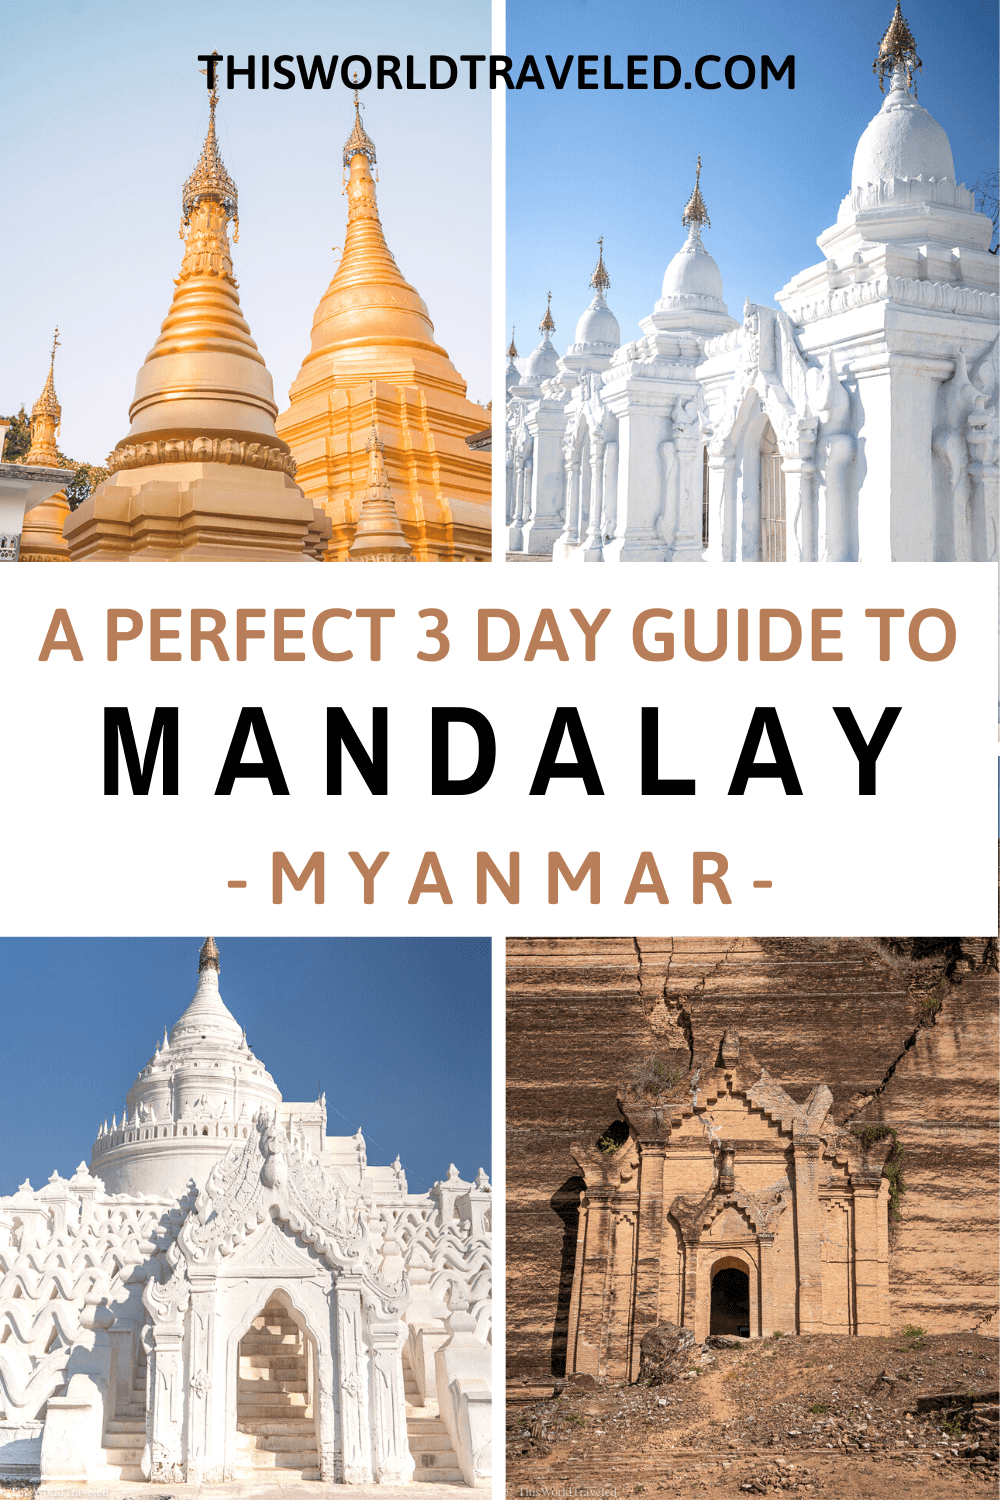 Pagodas and temples in Mandalay, Myanmar with the text saying A Perfect 3- Day Guide to Mandalay, Myanmar